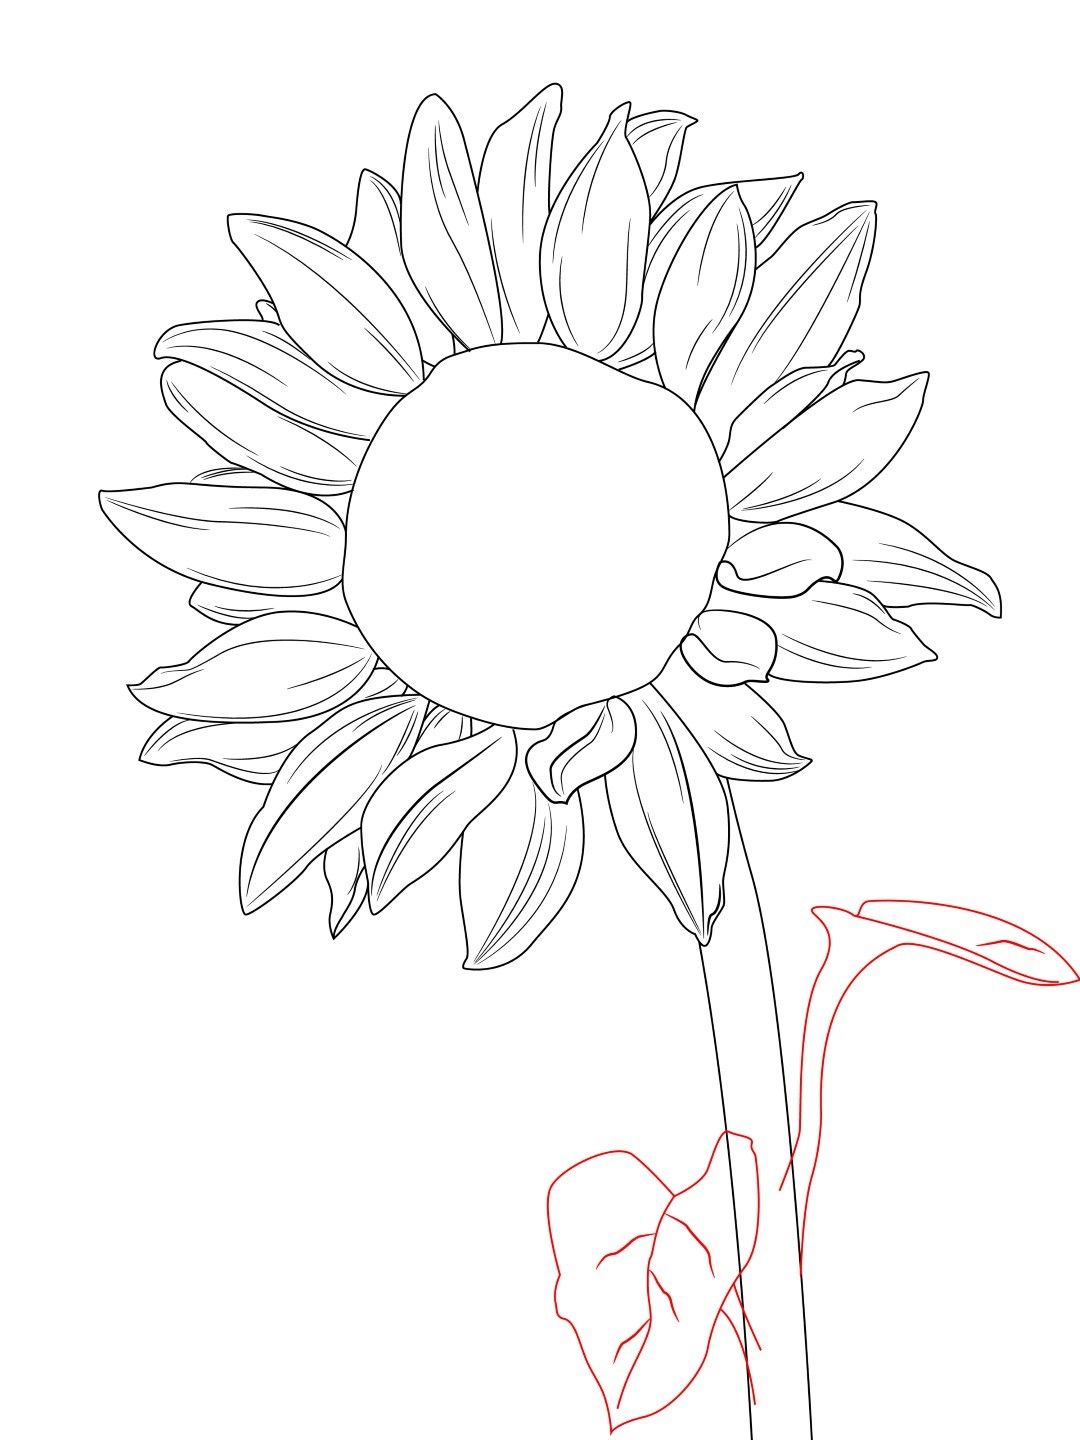 1080x1440 Gallery How To Draw Sunflower,